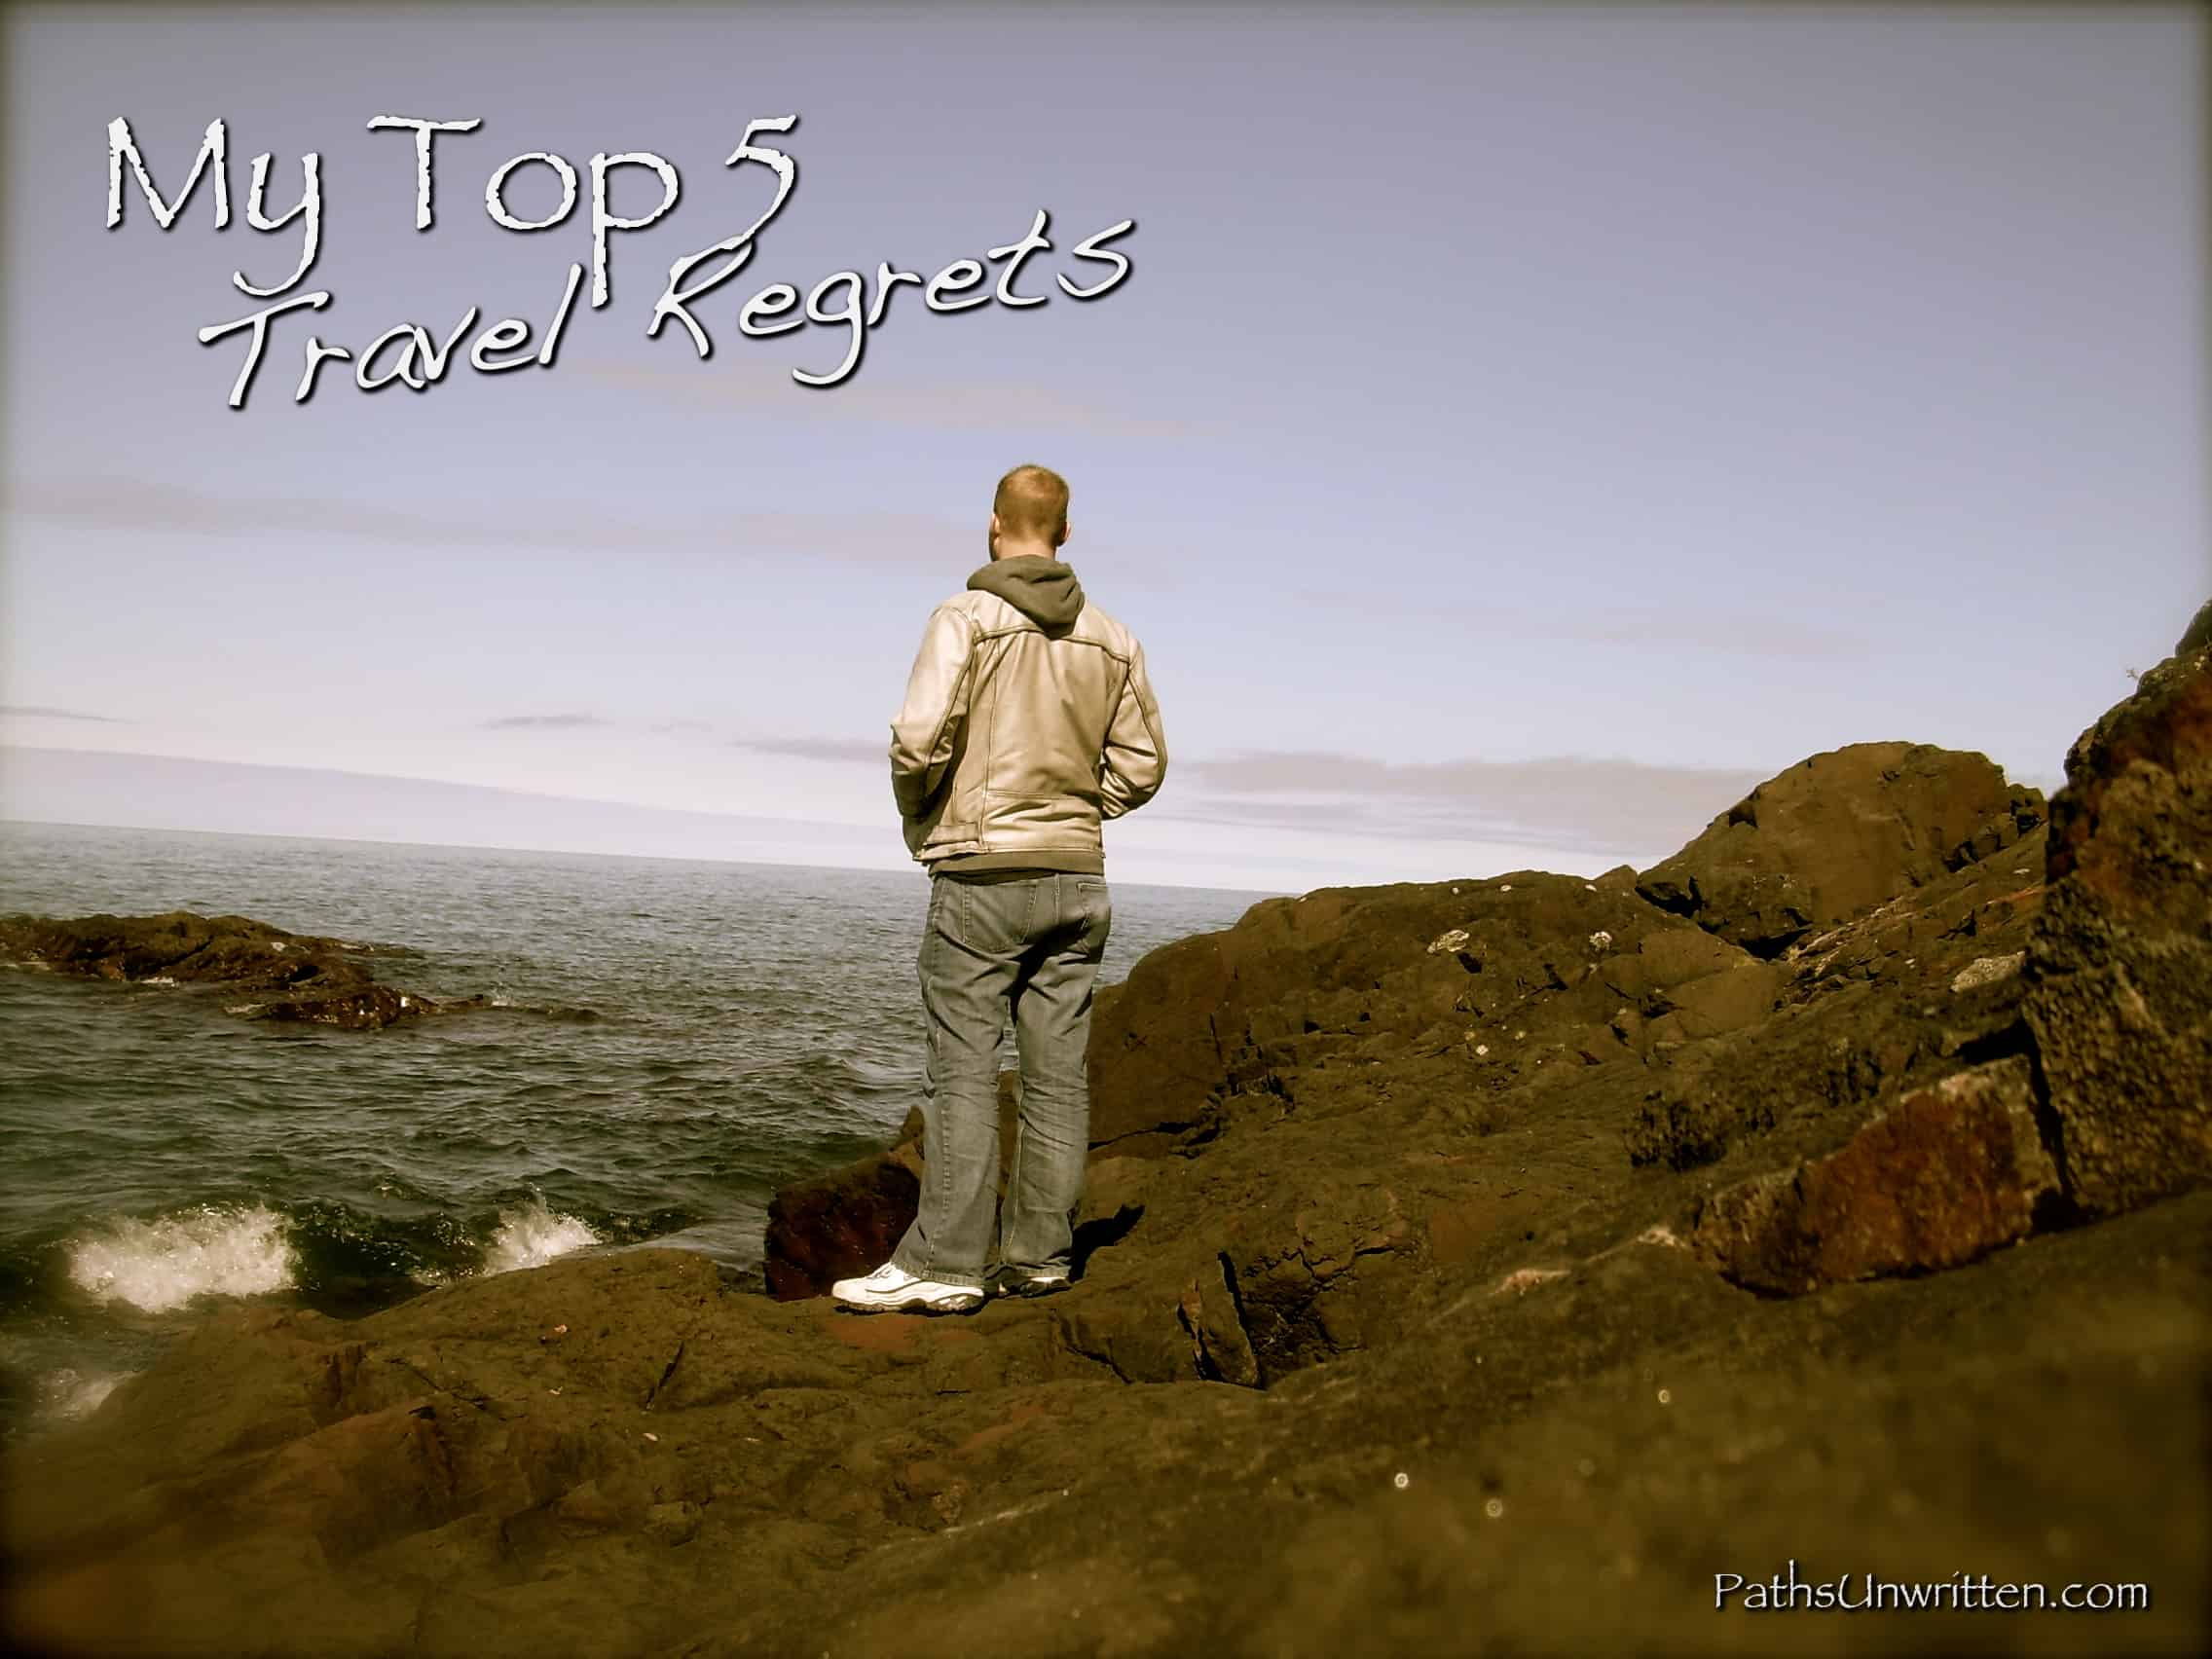 My Top 5 Travel Regrets